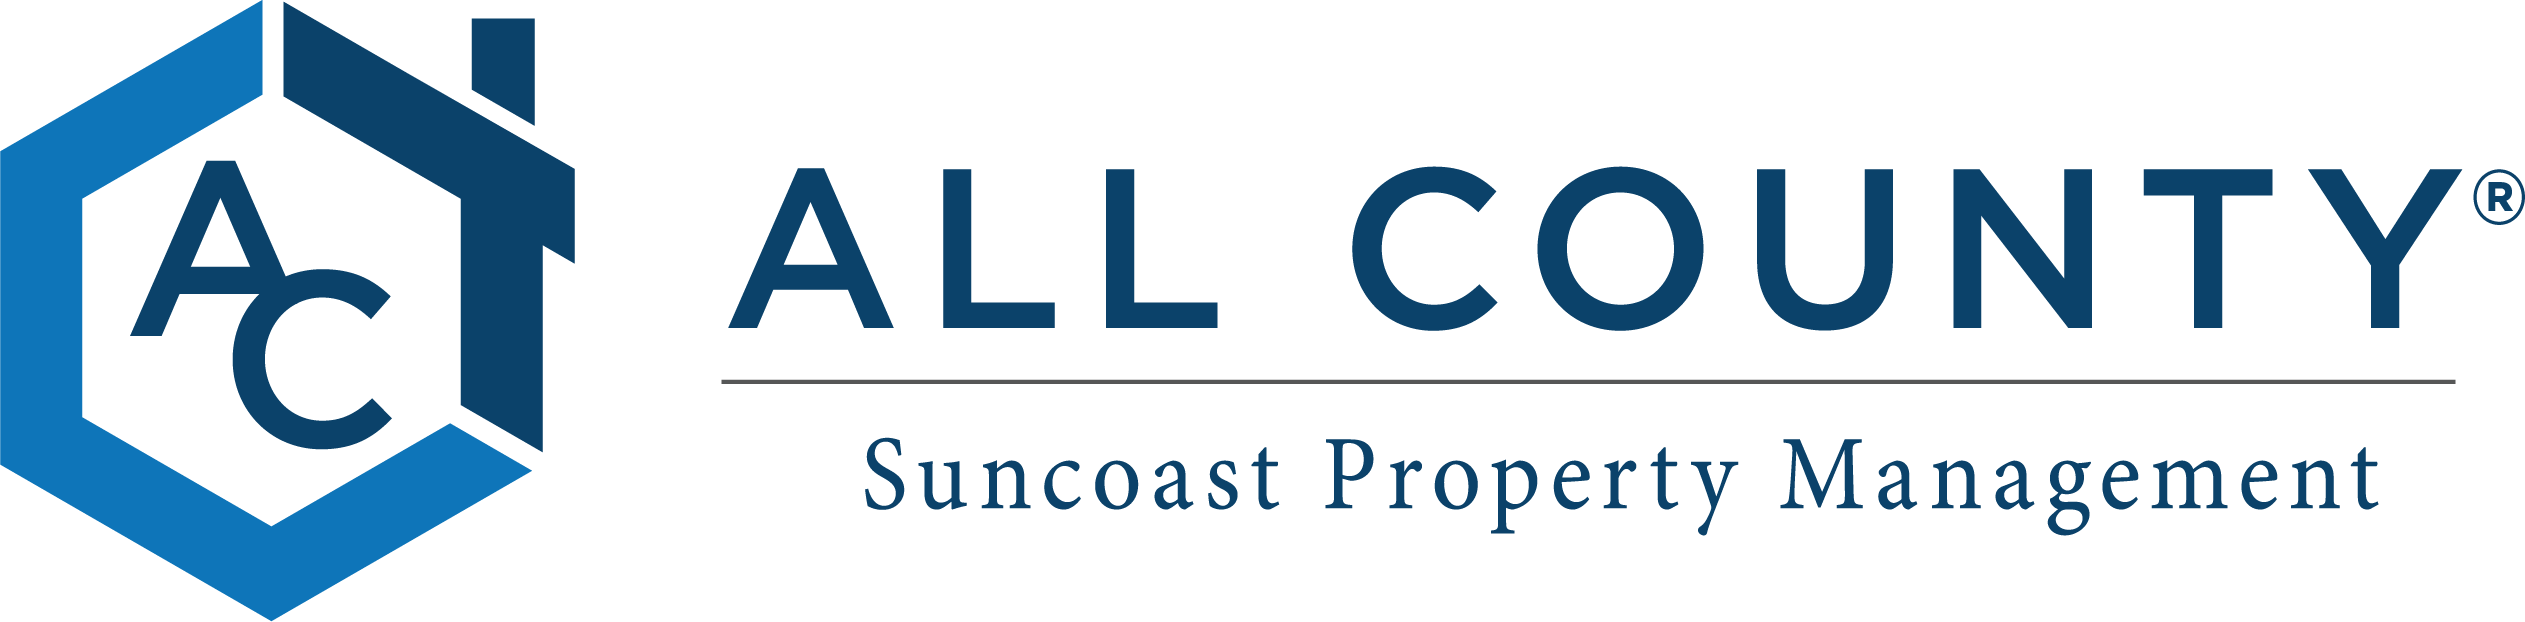 All County Suncoast Property Management